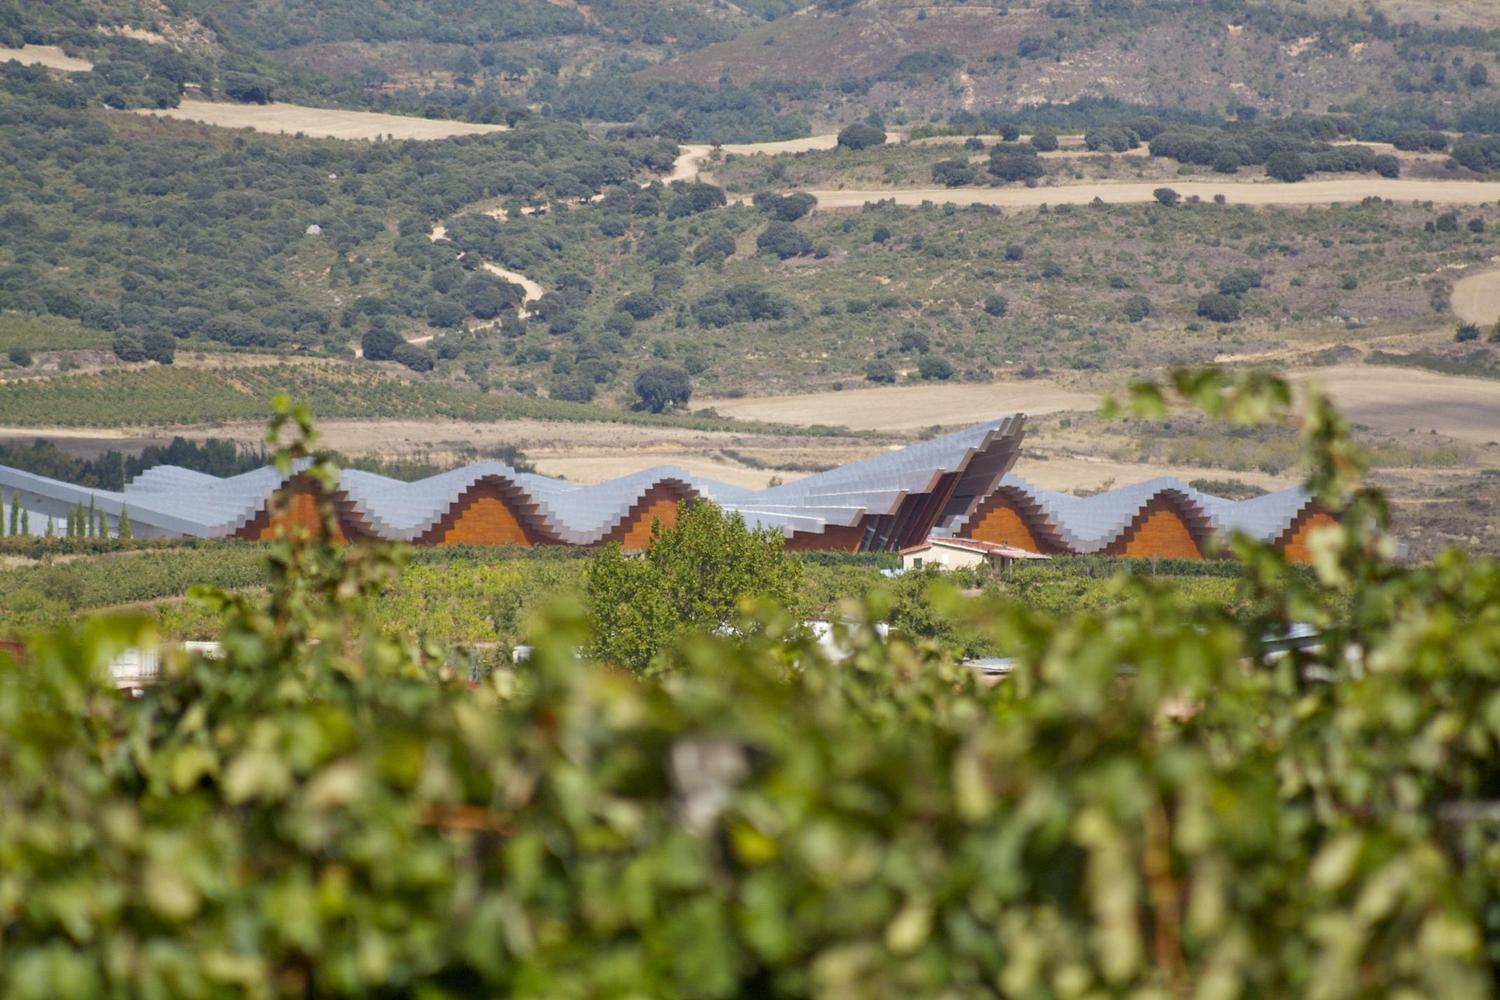 The Ysios winery, designed by Calatrava